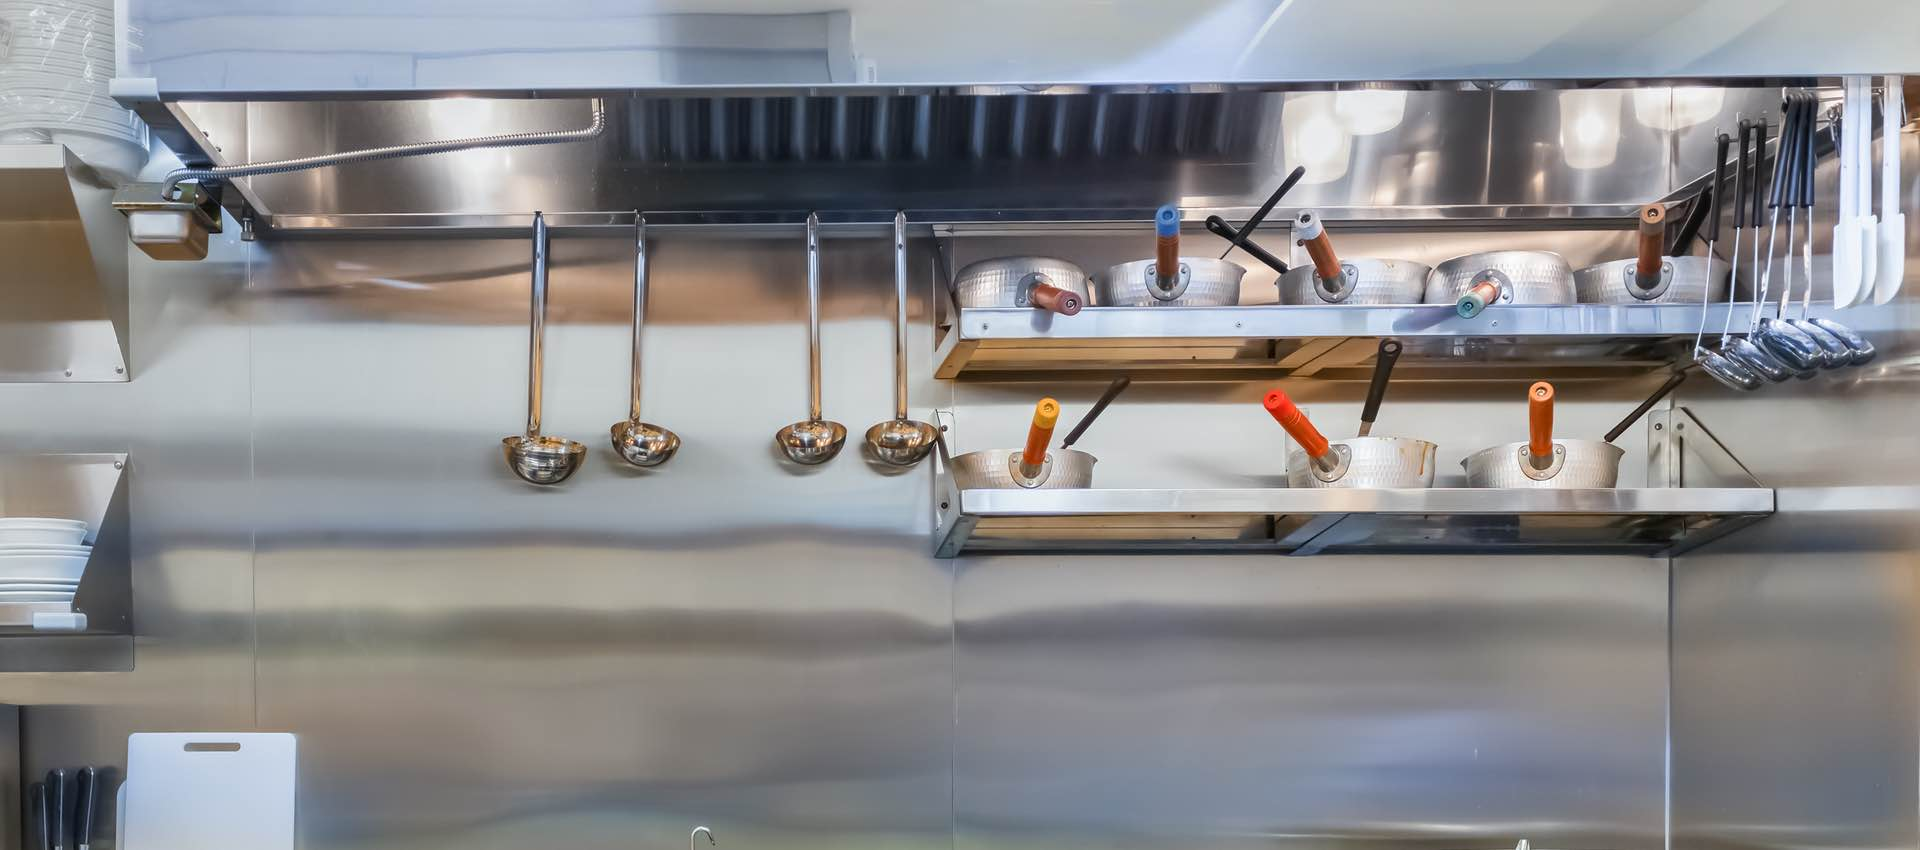 Does My Kitchen Grease Extraction System Need To Be Cleaned?